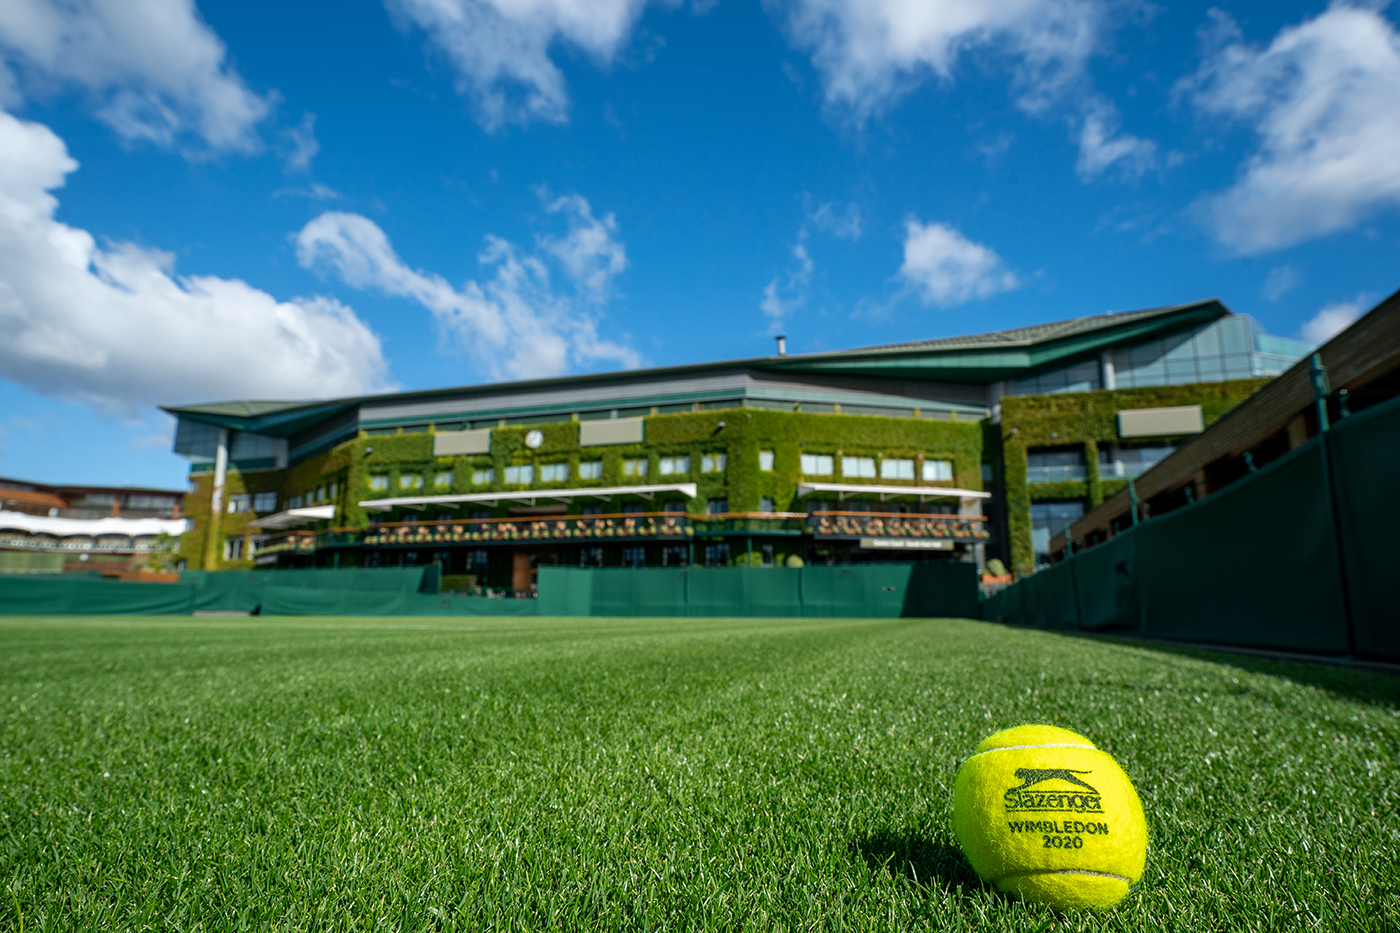 Wimbledon makes further donations